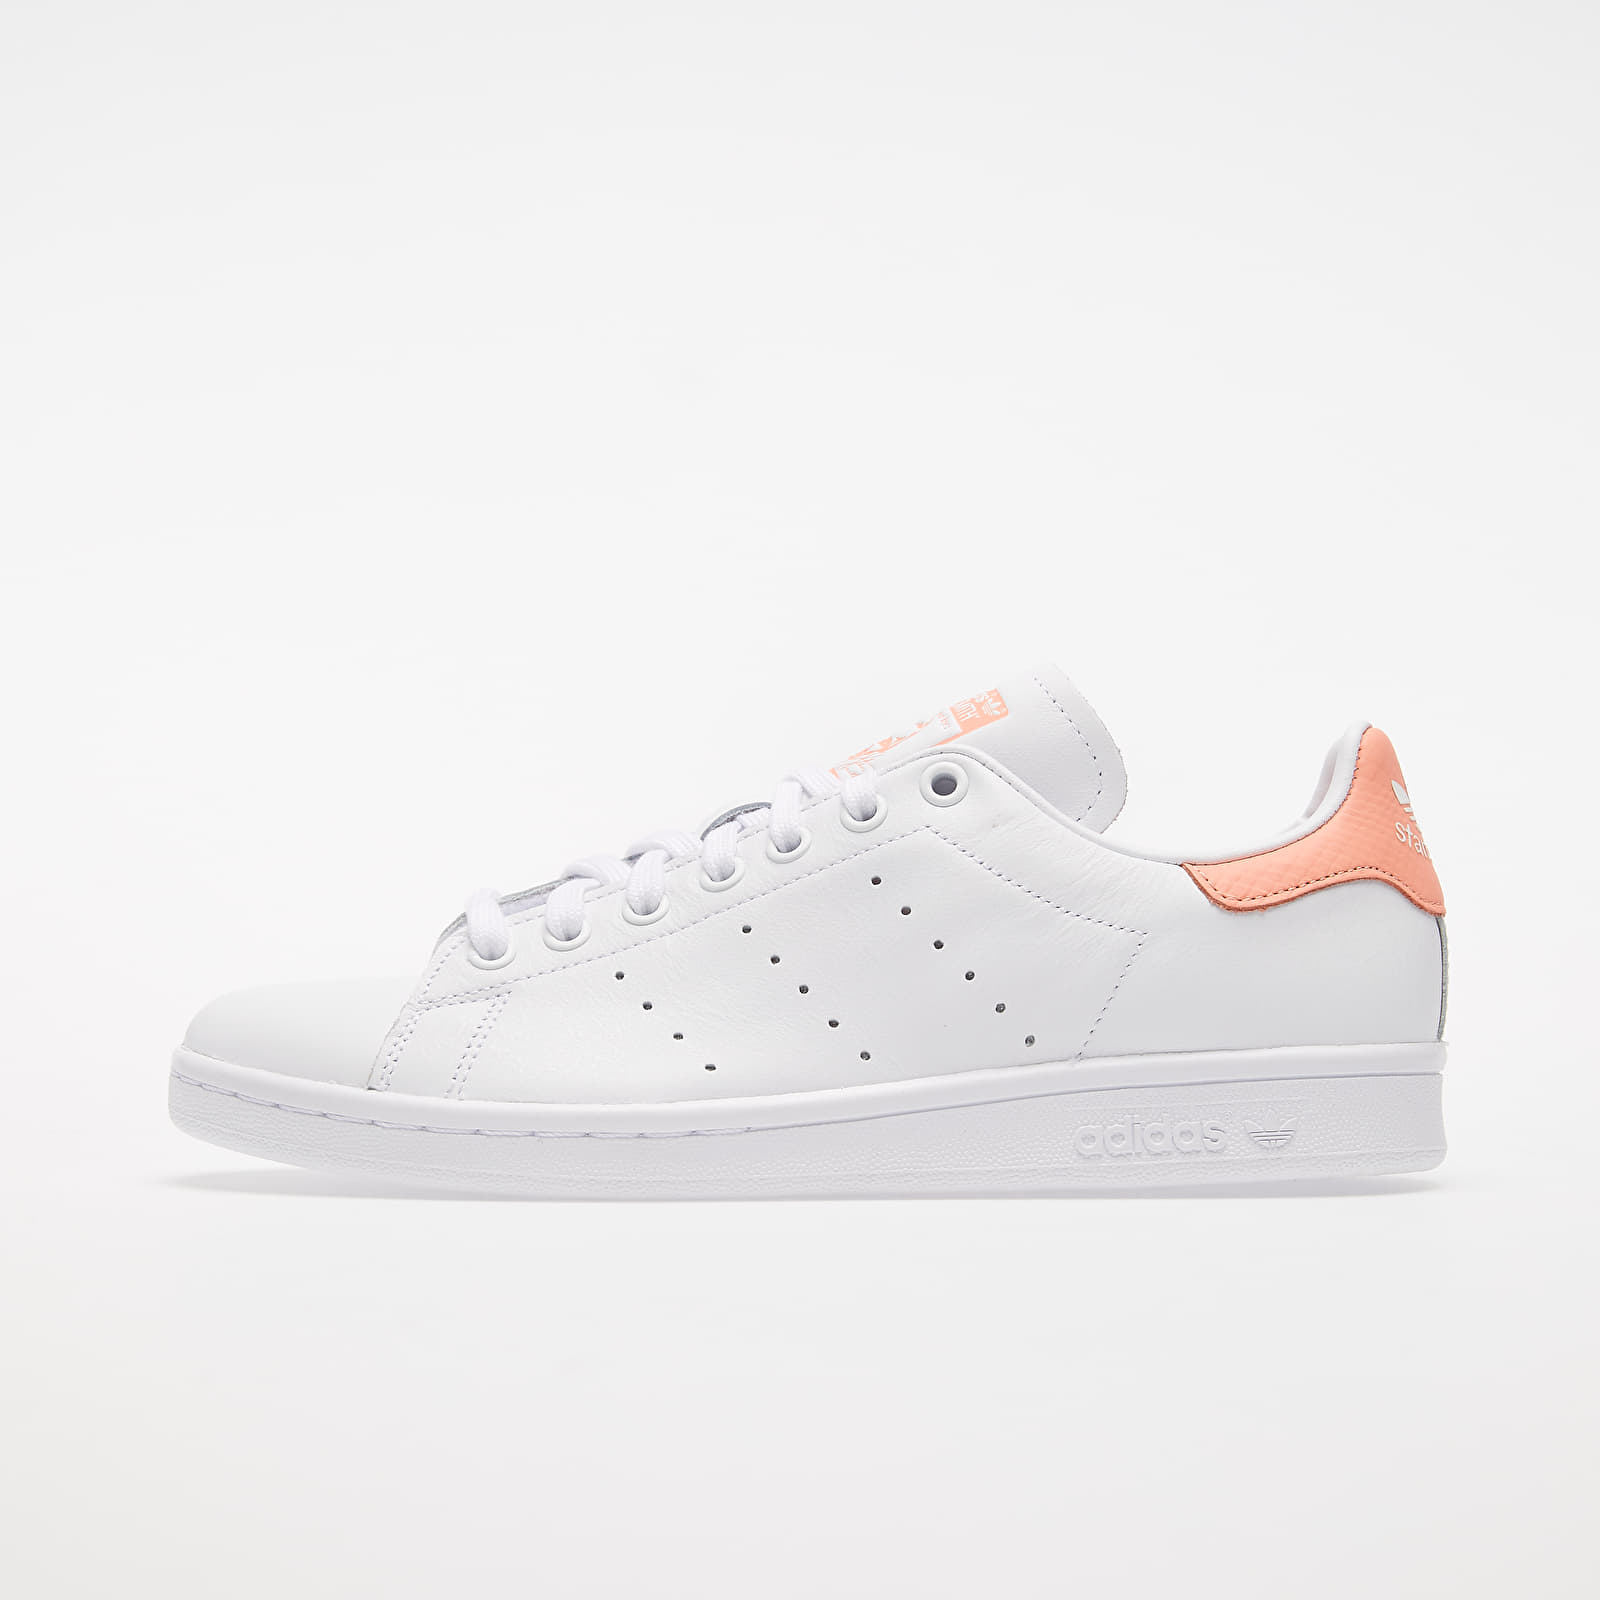 Chaussures et baskets femme adidas Stan Smith W Ftw White/ Ftw White/ Chalk Coral